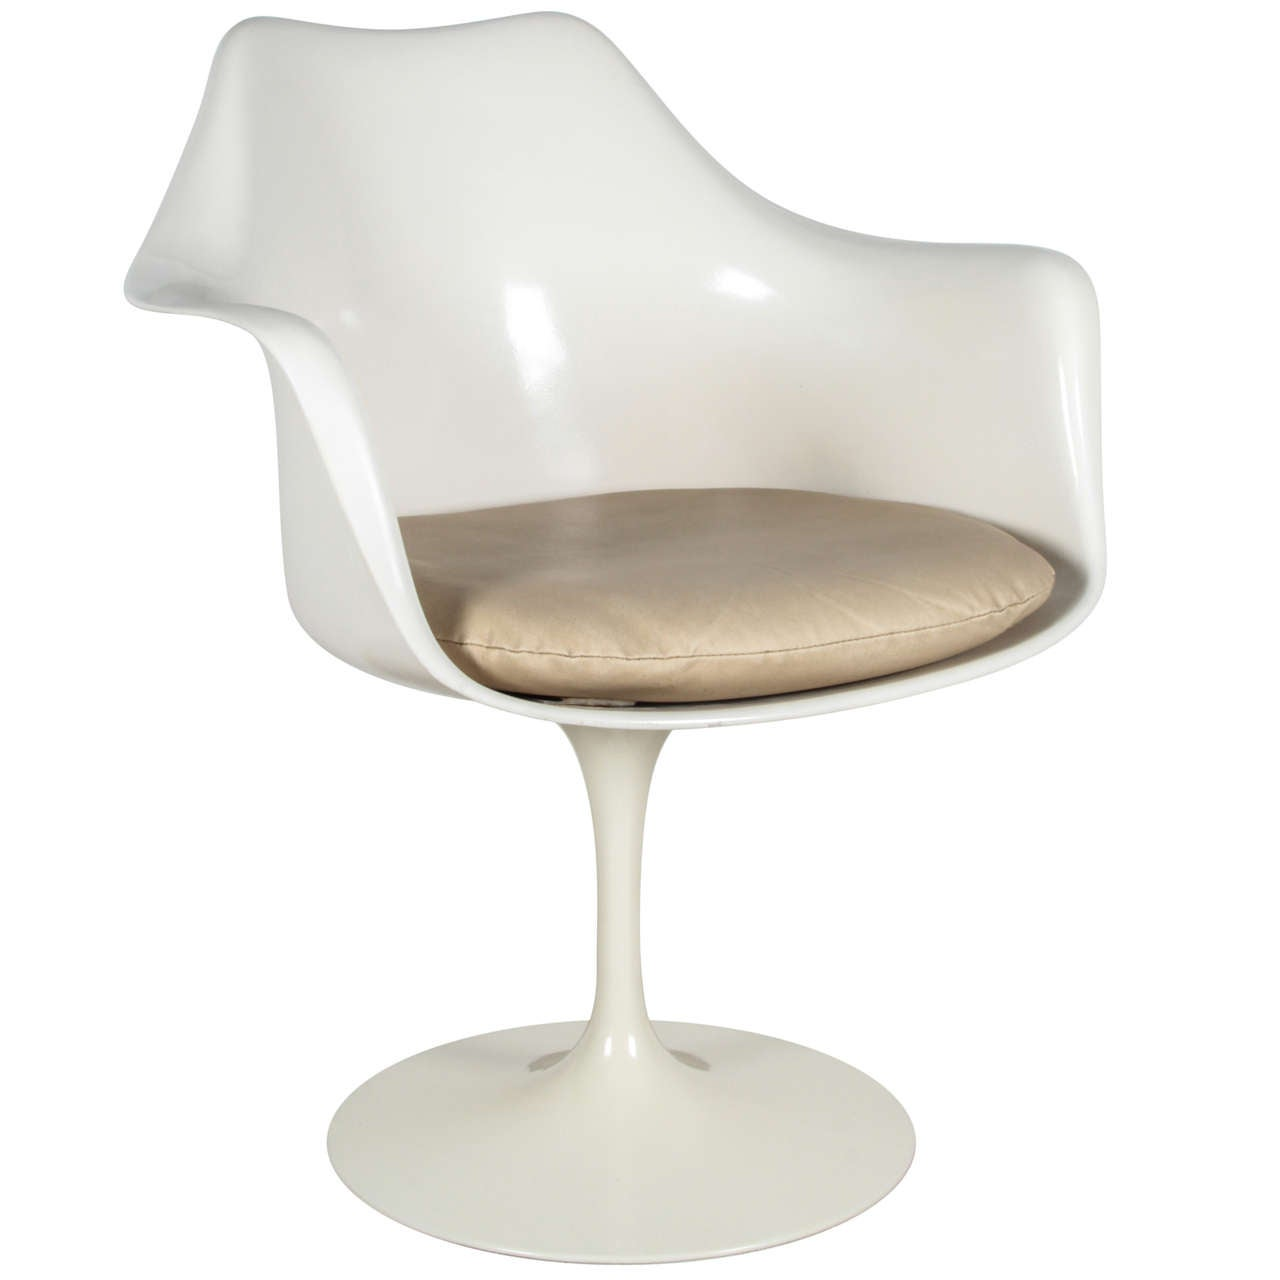 vintage tulip chair by saarinen for knoll international at 1stdibs. Black Bedroom Furniture Sets. Home Design Ideas